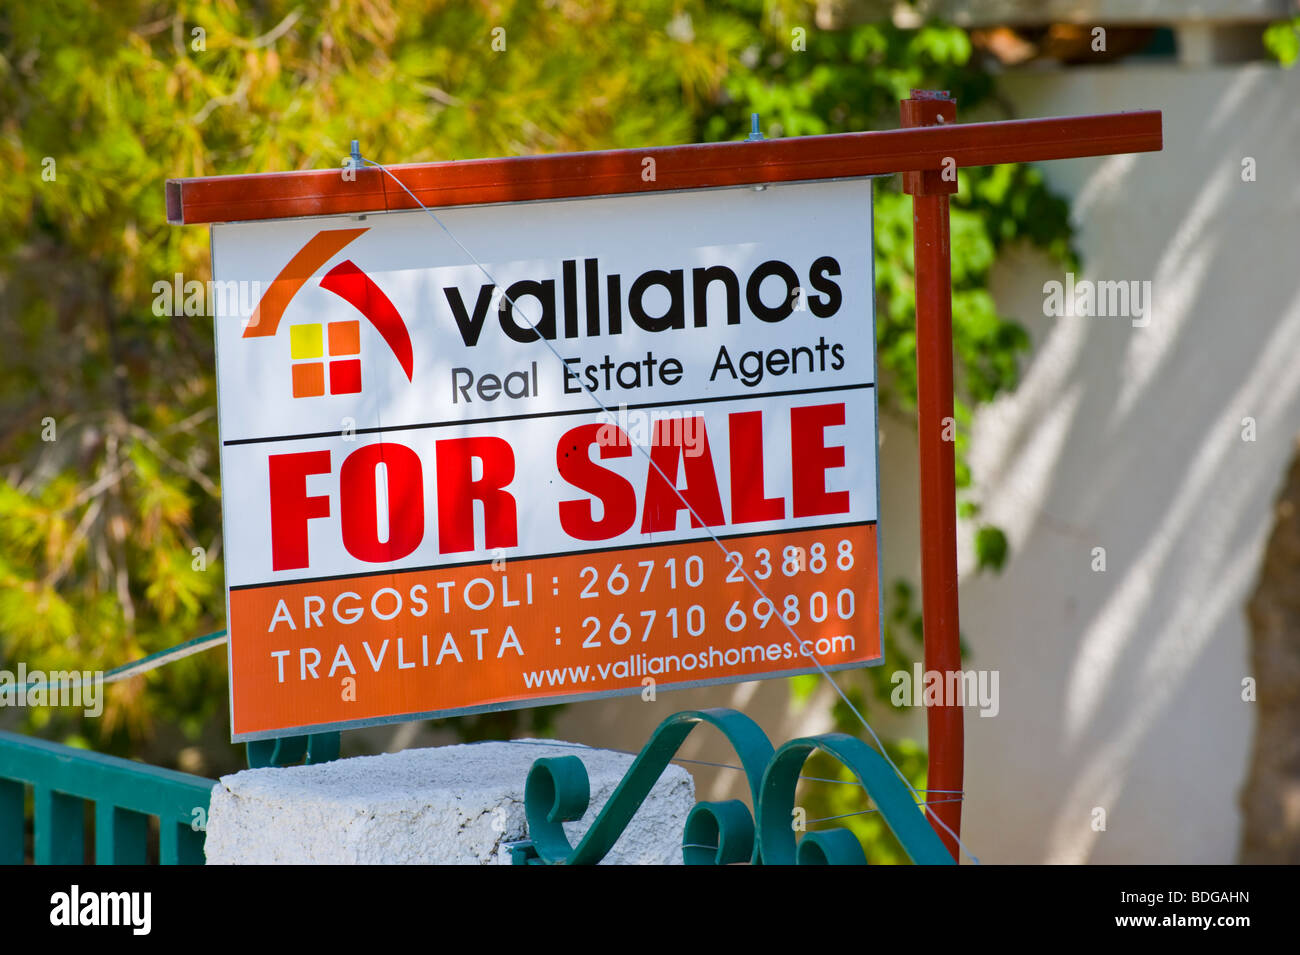 Real Estate Agents for sale board outside house at Assos on